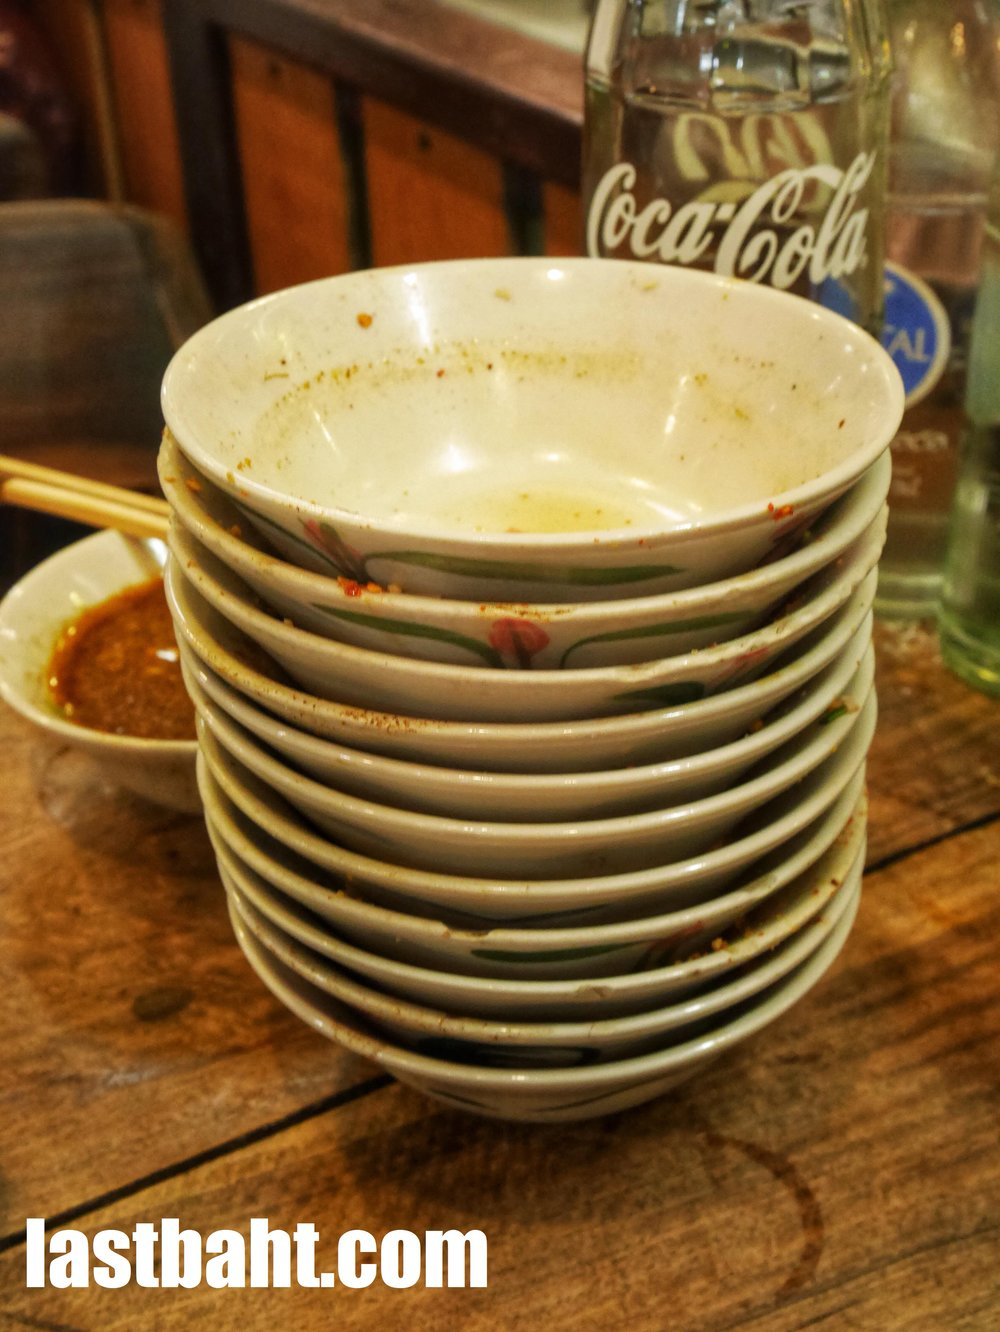 empty bowls of boat noodles